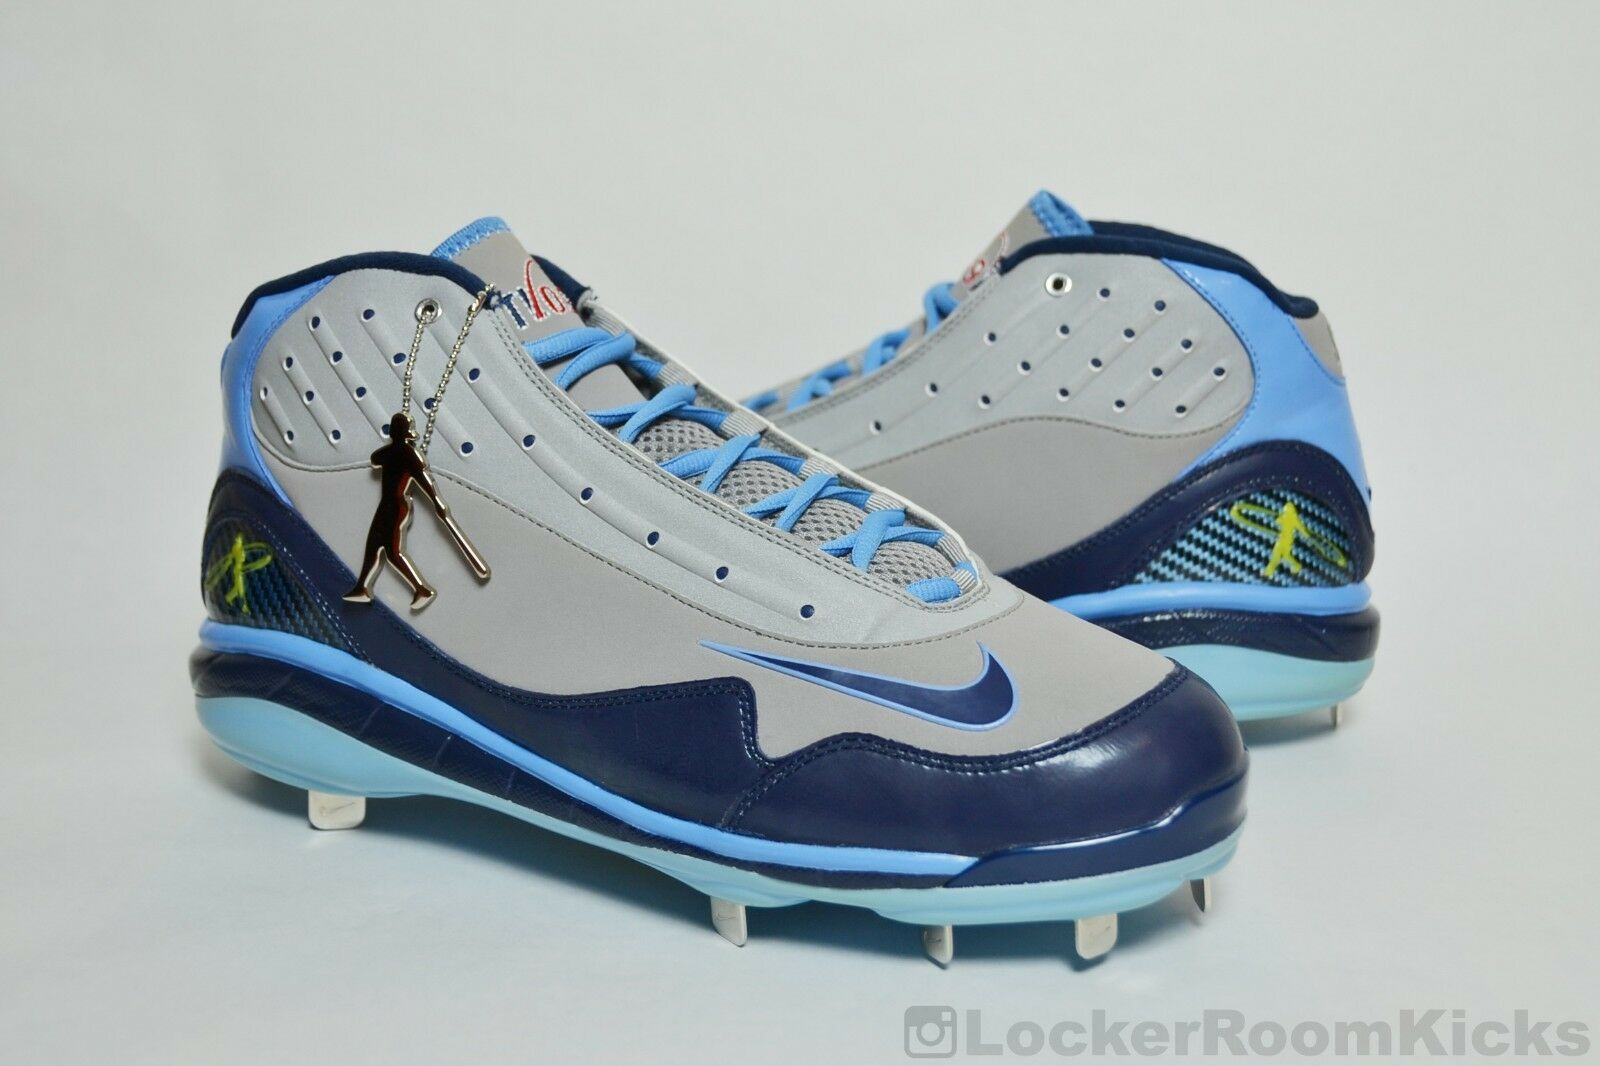 2018 MLB All Star Game St. Louis Nike Swingman Player Exclusive Cleats Crawford Cheap women's shoes women's shoes